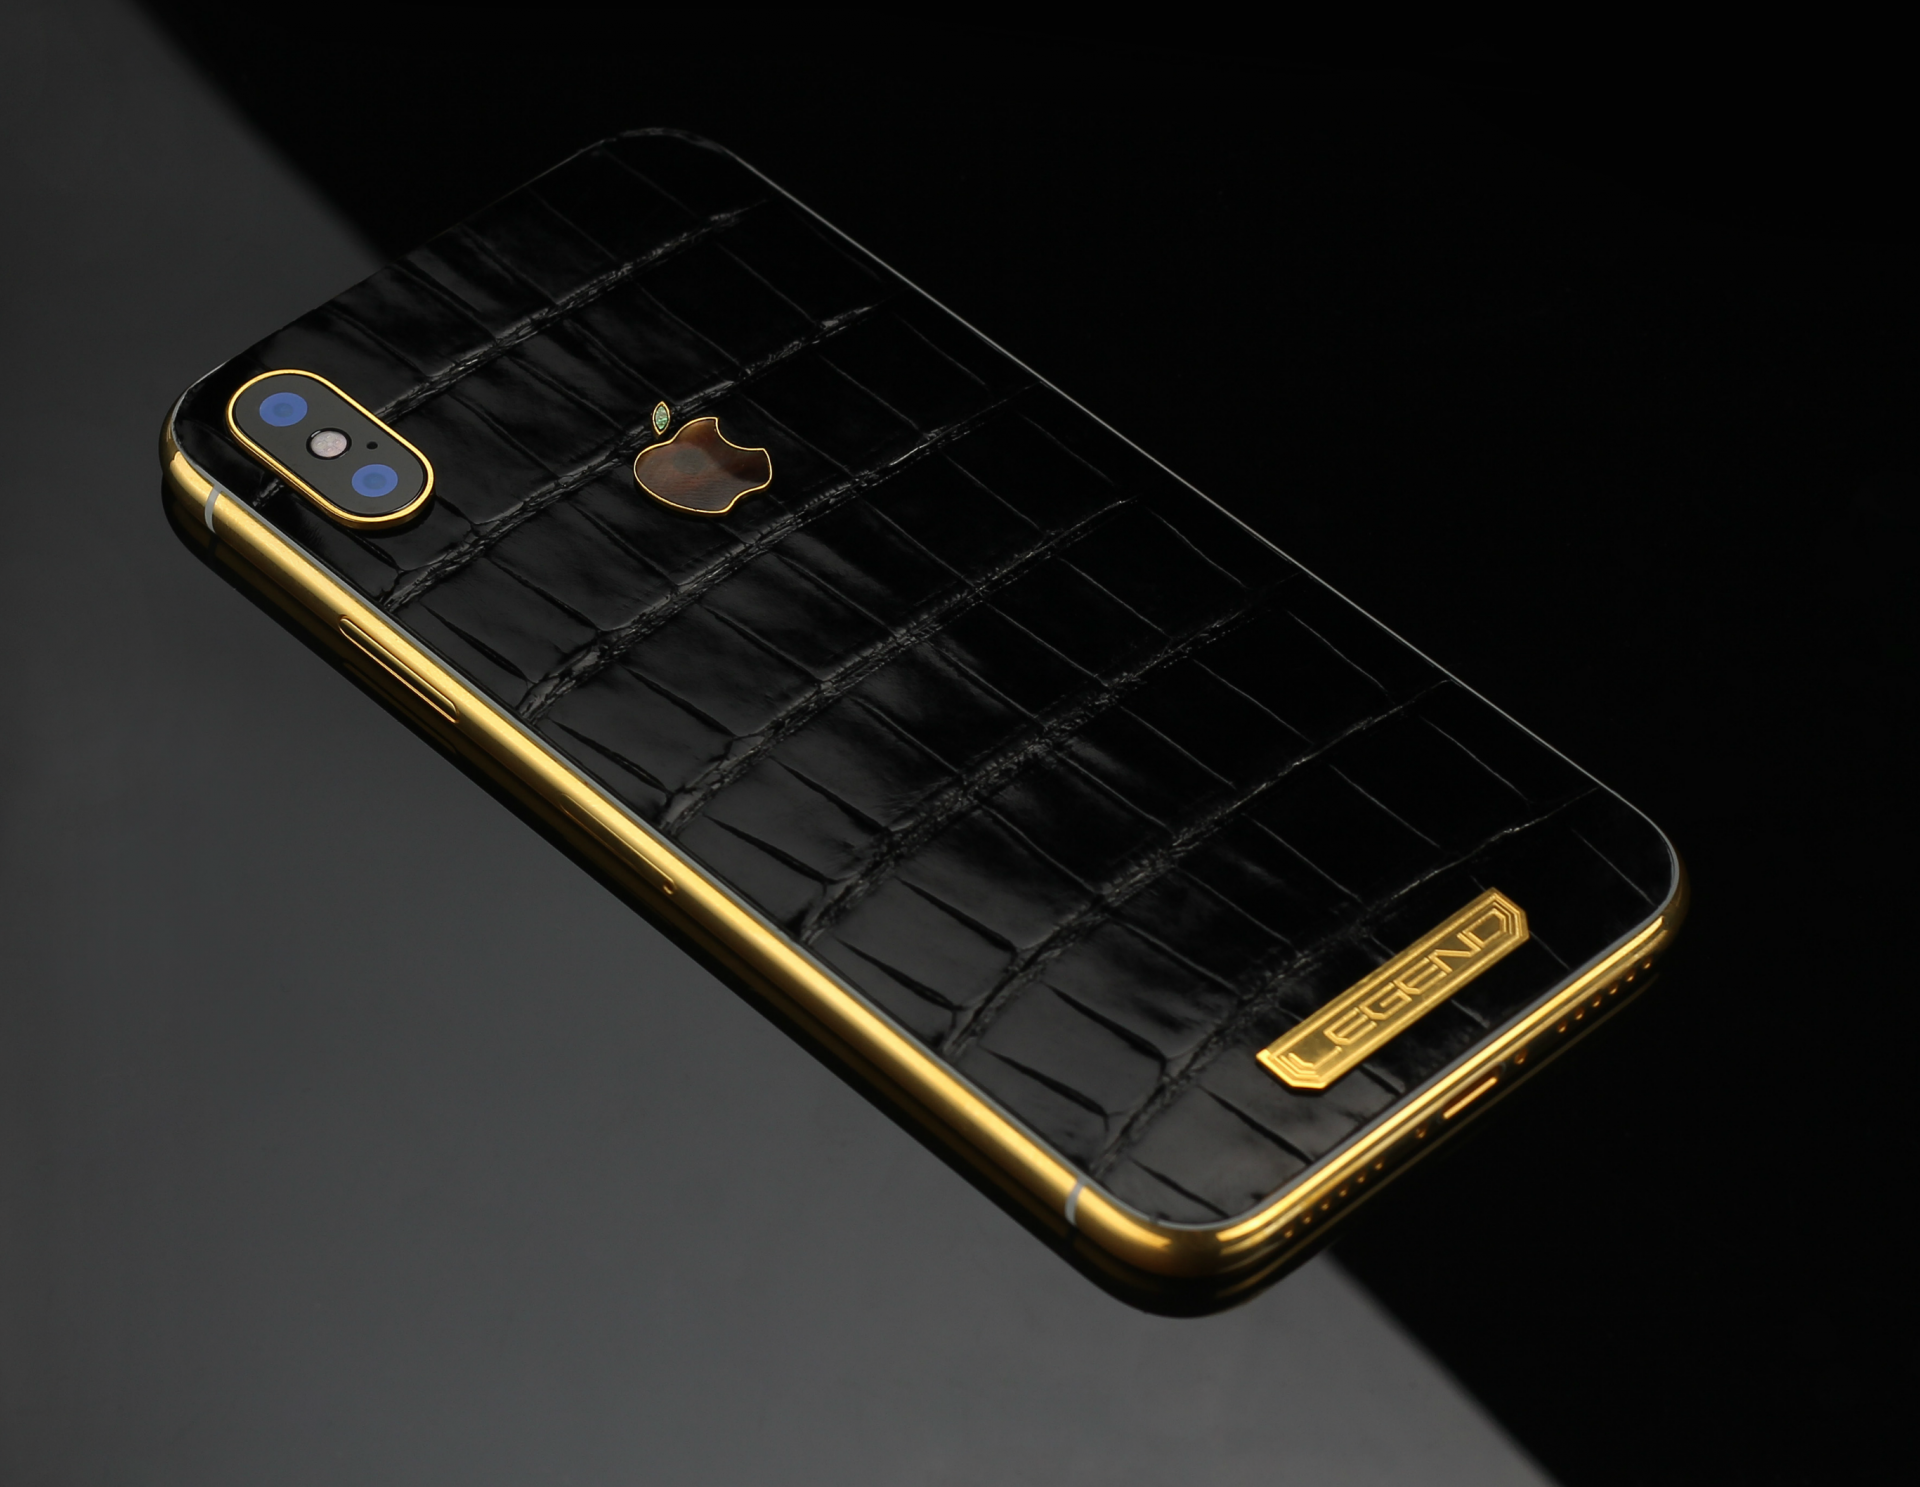 iPhone XS 256Gb 24k Gold edition with Crocodile leather